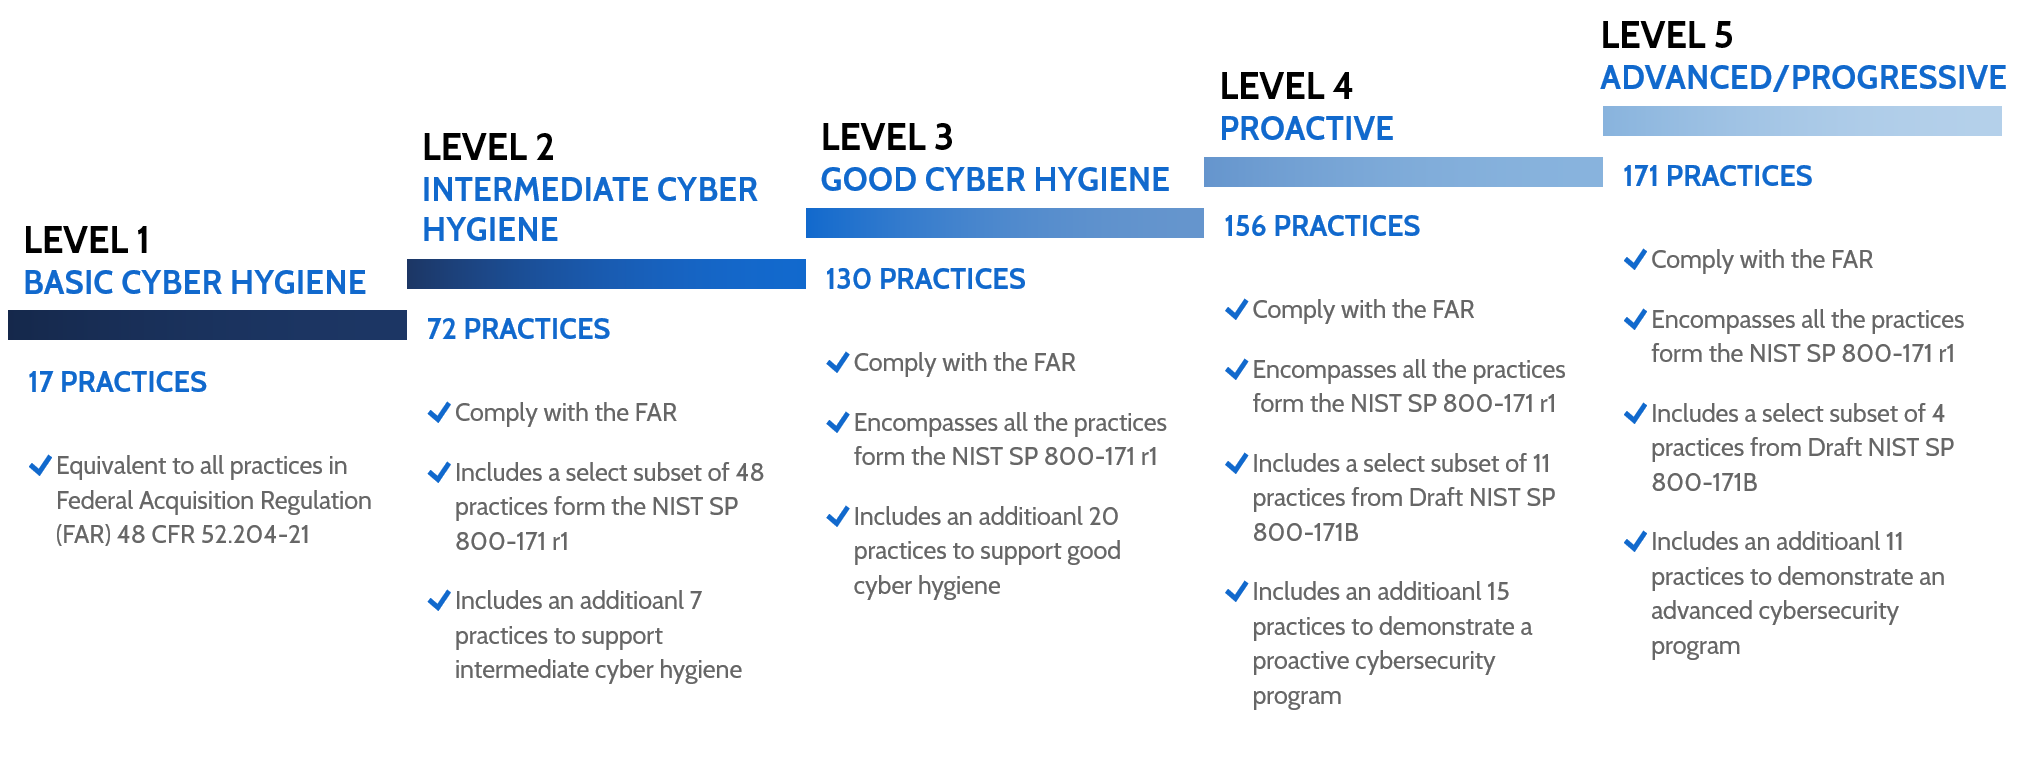 cybersecurity-maturity-model-steps